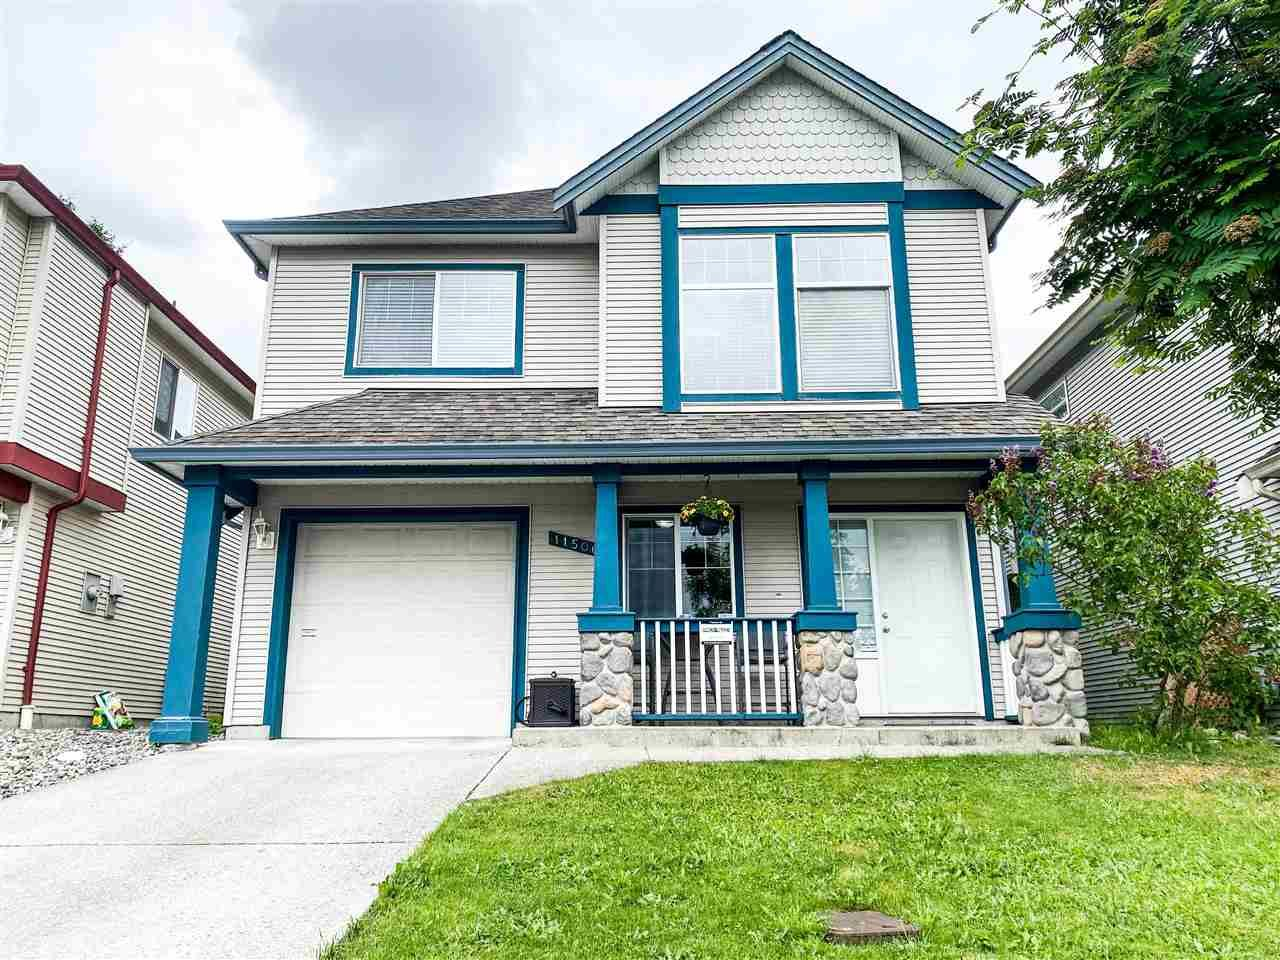 Main Photo: 11506 228 Street in Maple Ridge: East Central House for sale : MLS®# R2585365